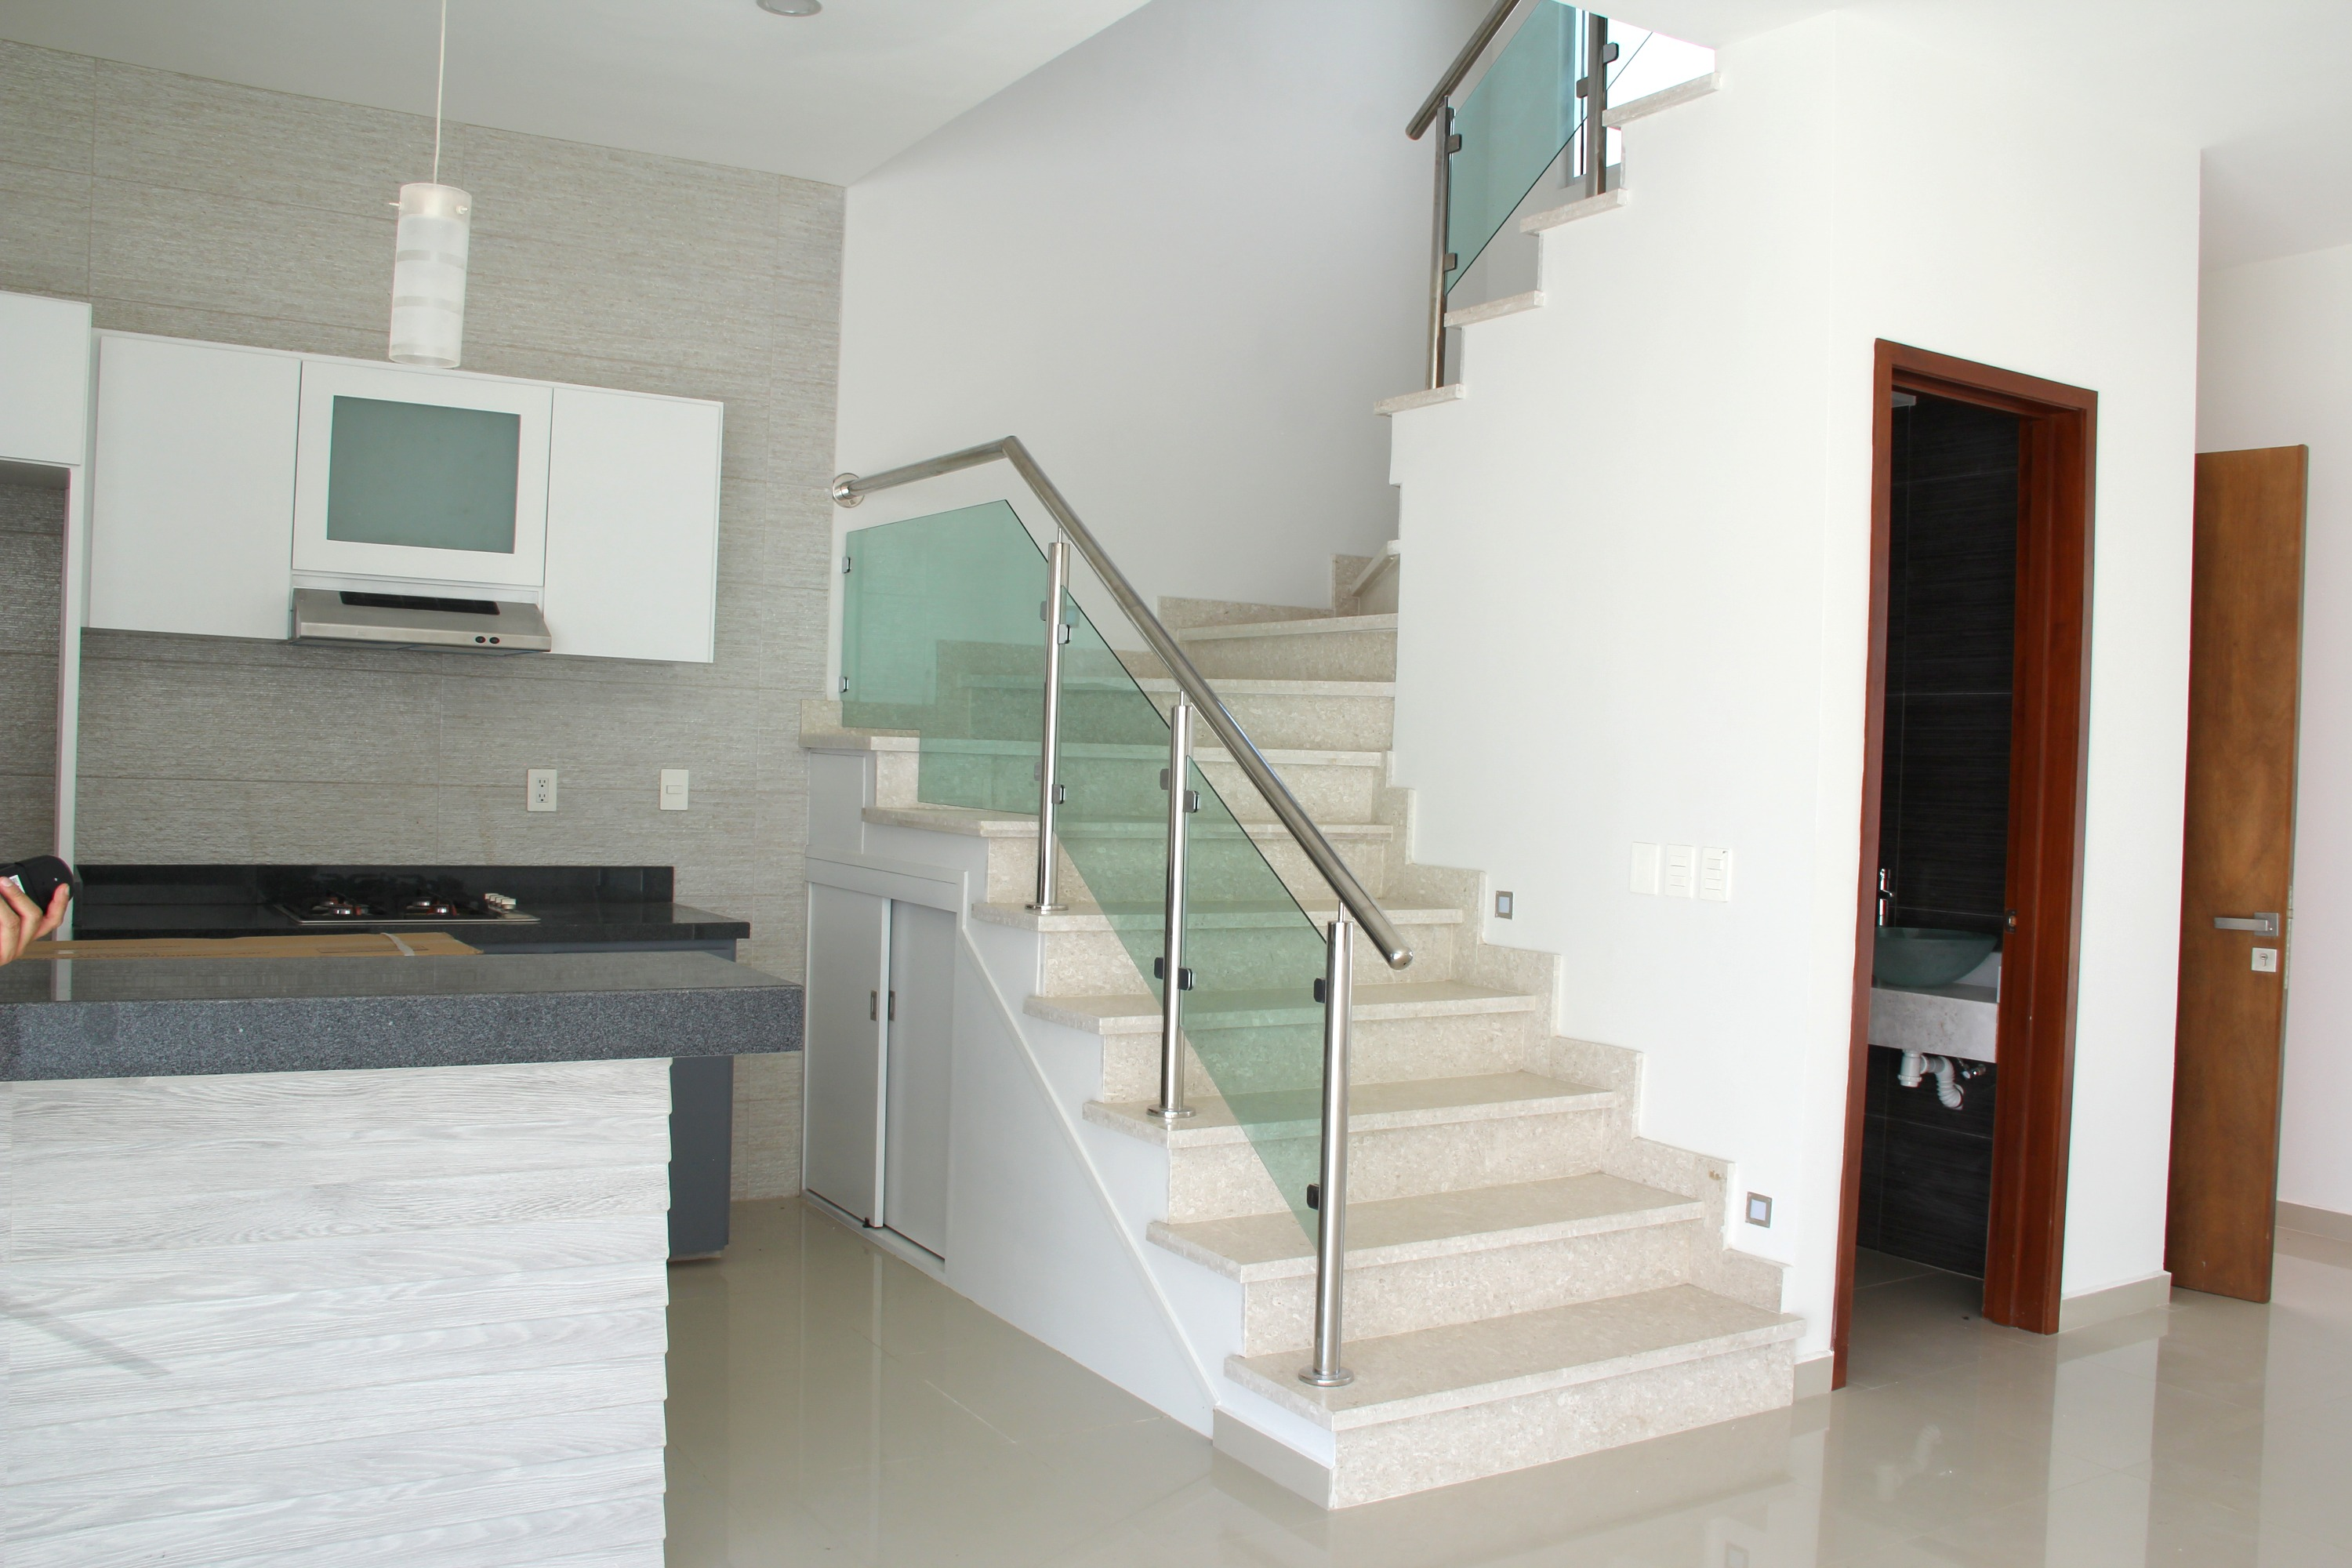 Kitchen and stairs to upper level.